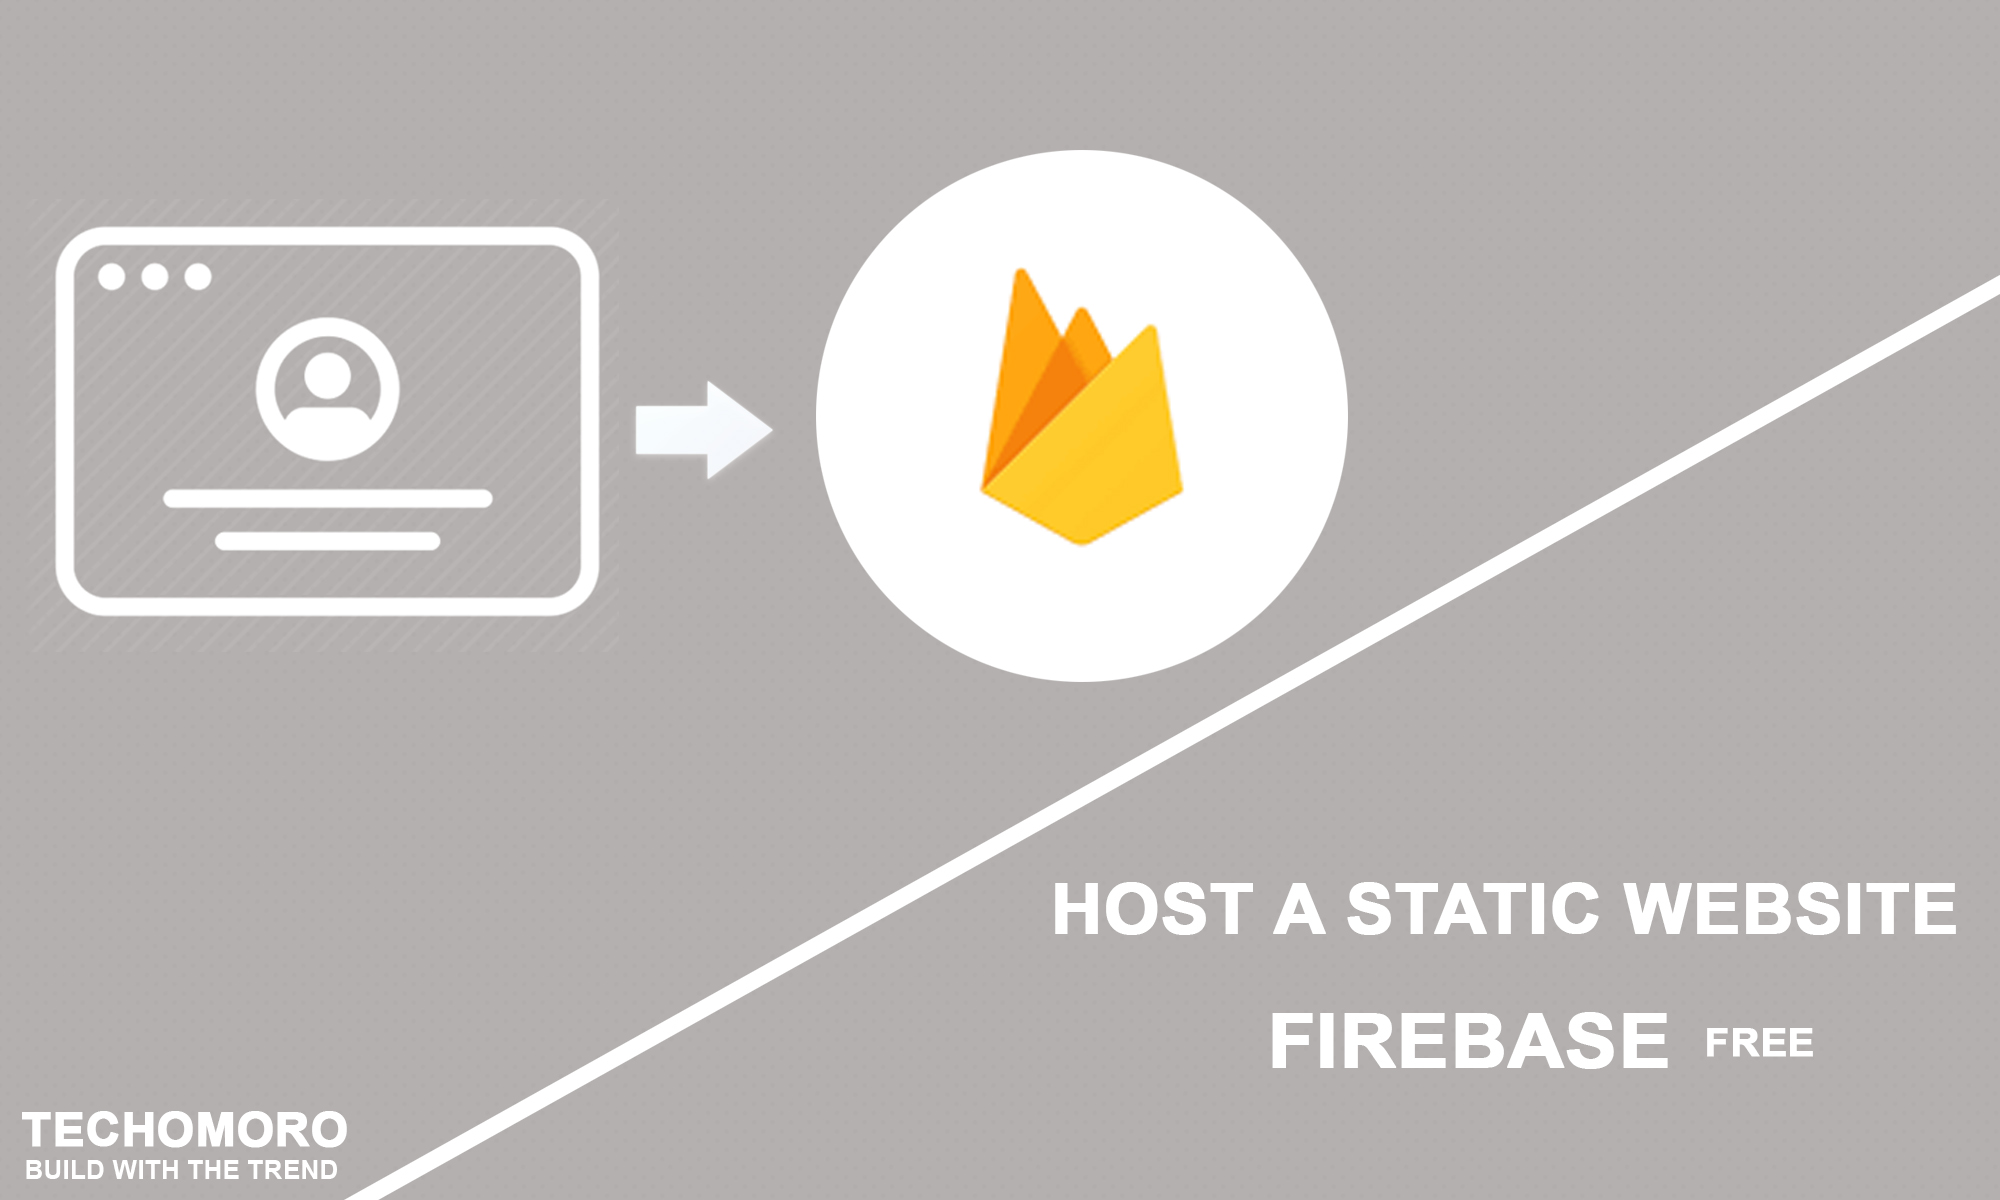 How to Host a Static Website for Free Using Firebase